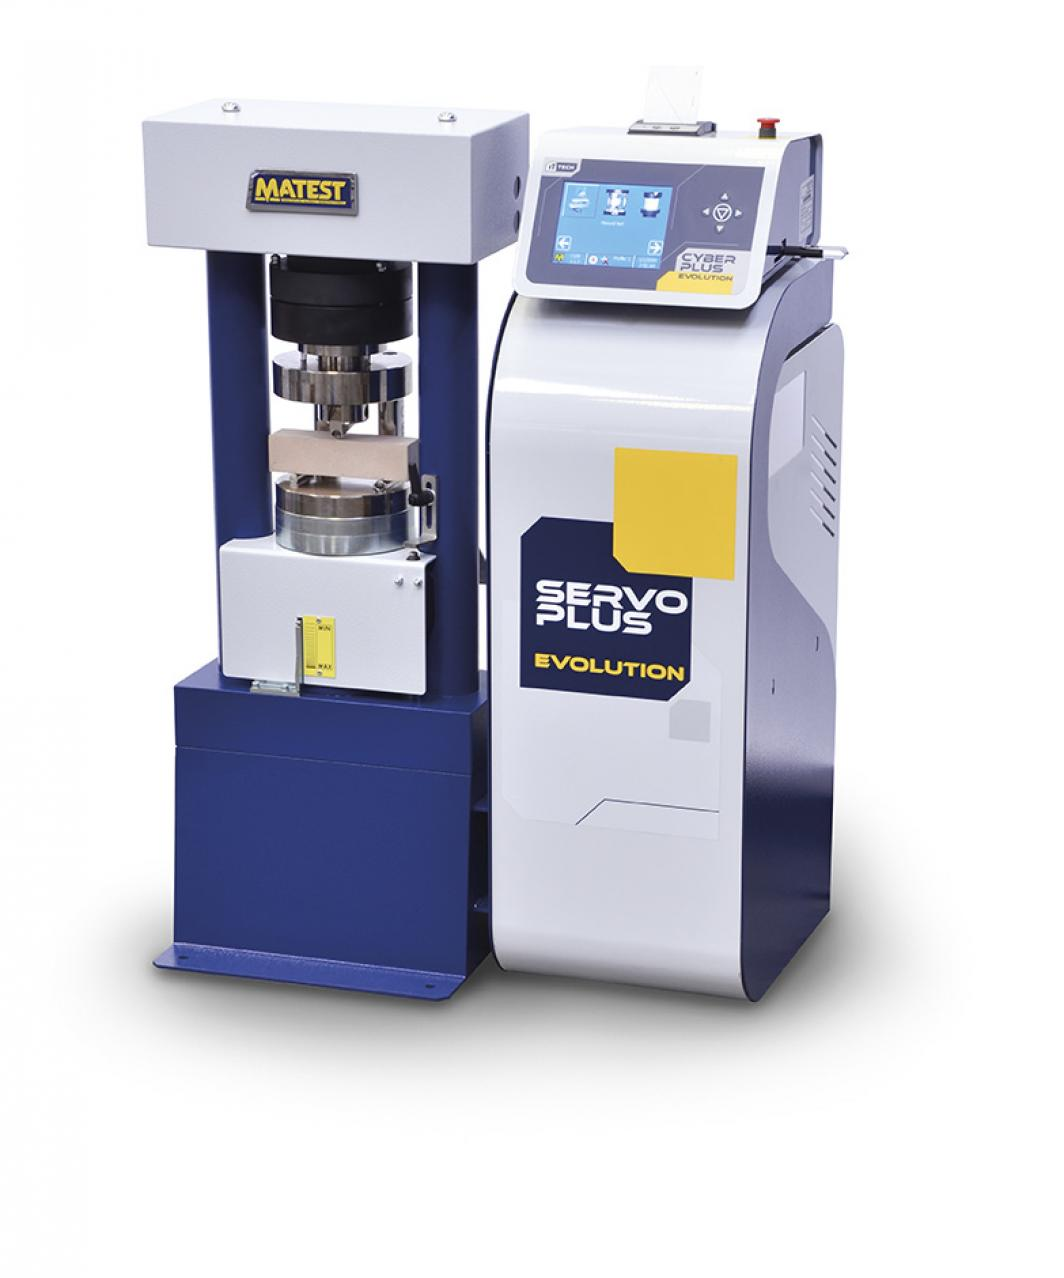 Compression and flexural machine dual range 250/15 kN, Servo-plus evolution